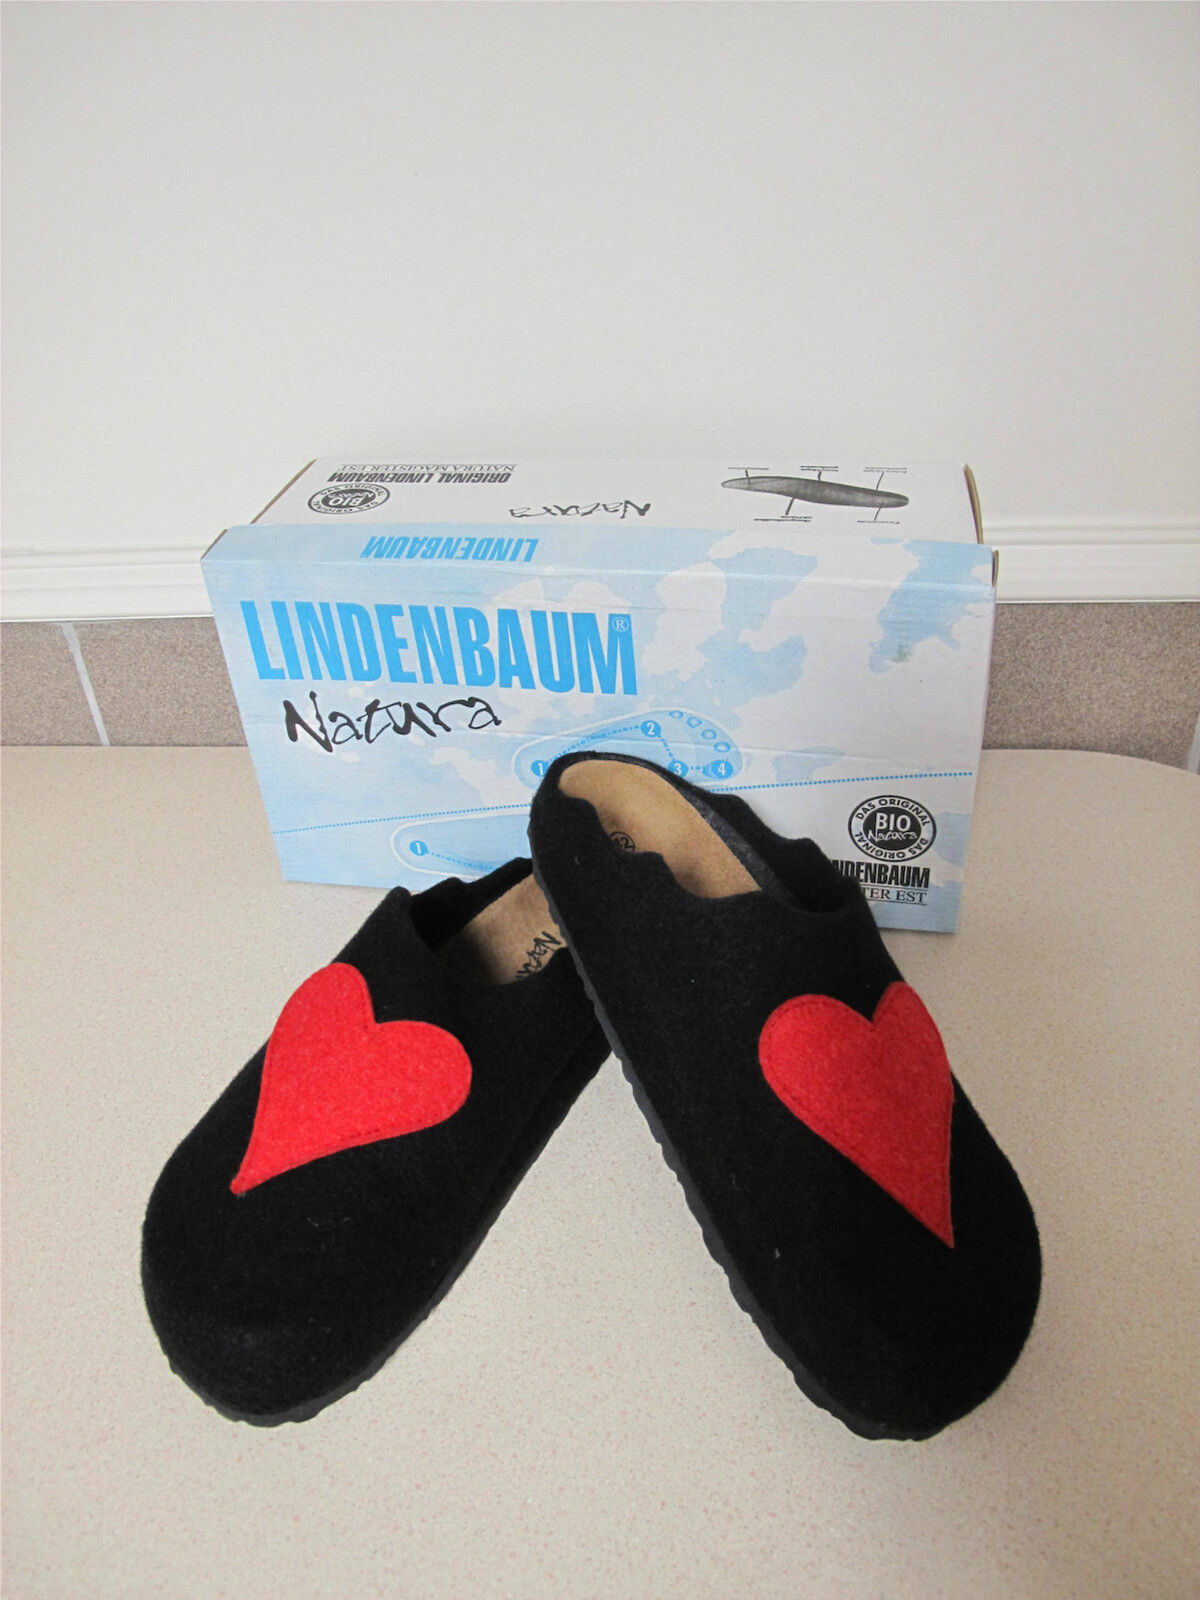 Women's slippers Lindenbaum Red Heart Black Wool boiled sz 10.5 42 made Germany